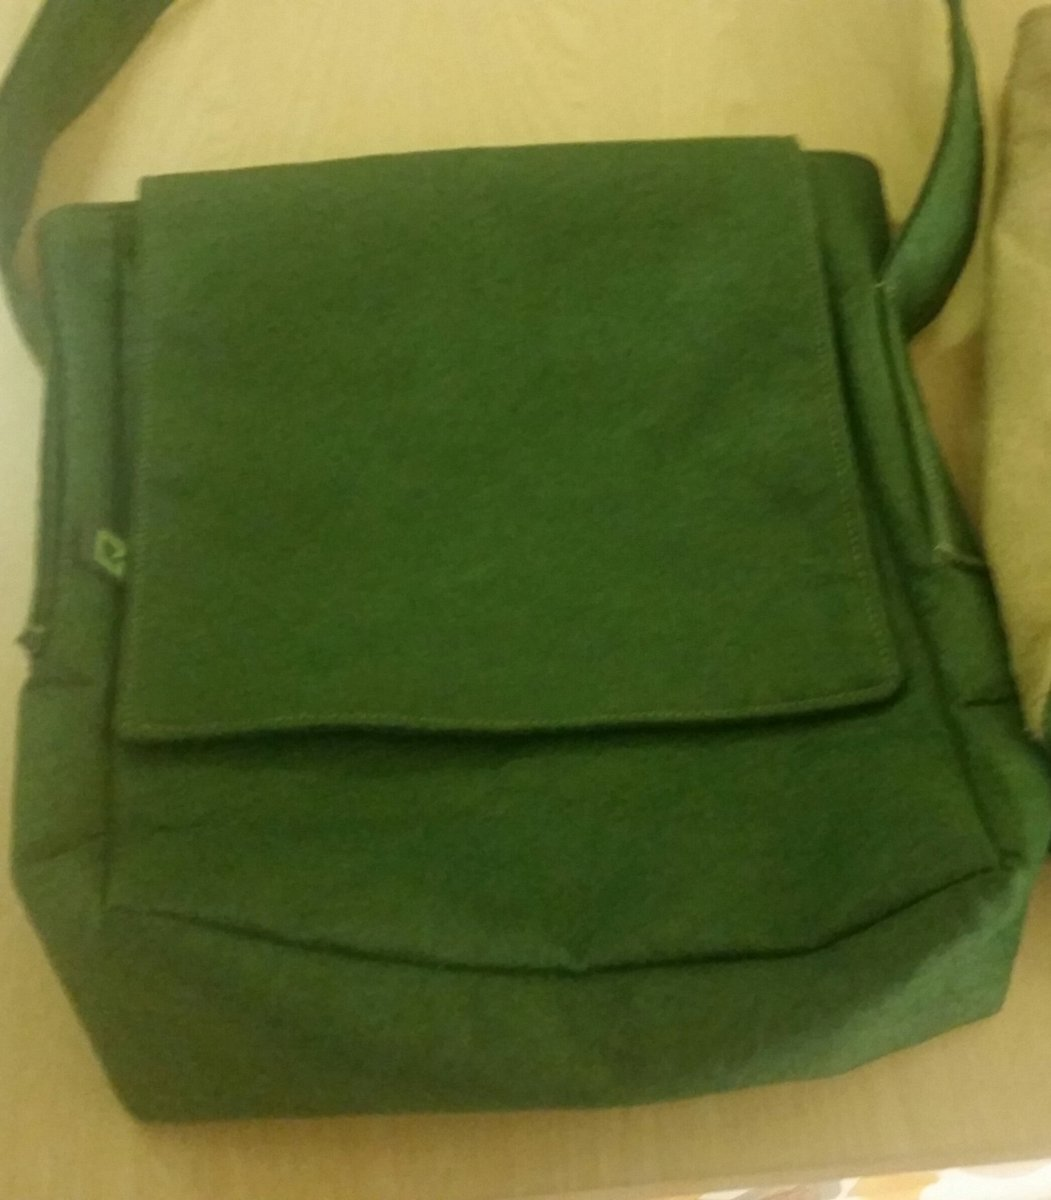 A small messenger bag